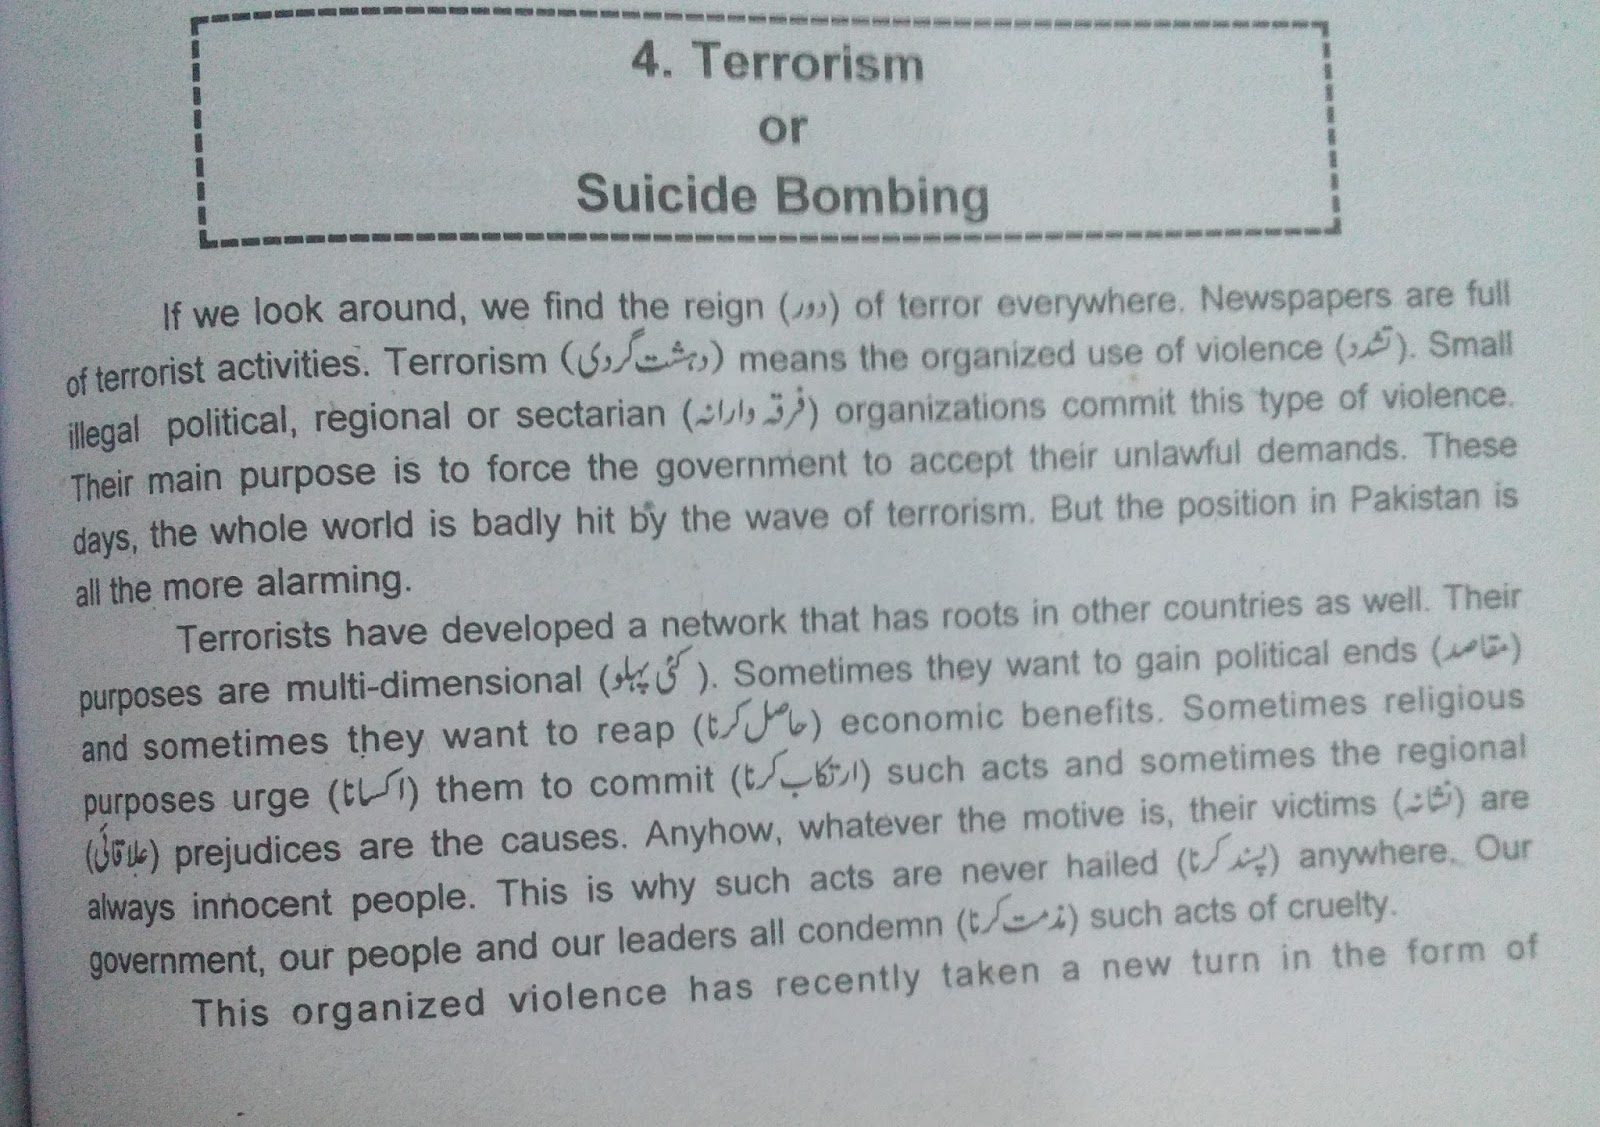 Terrorism in pakistan essay